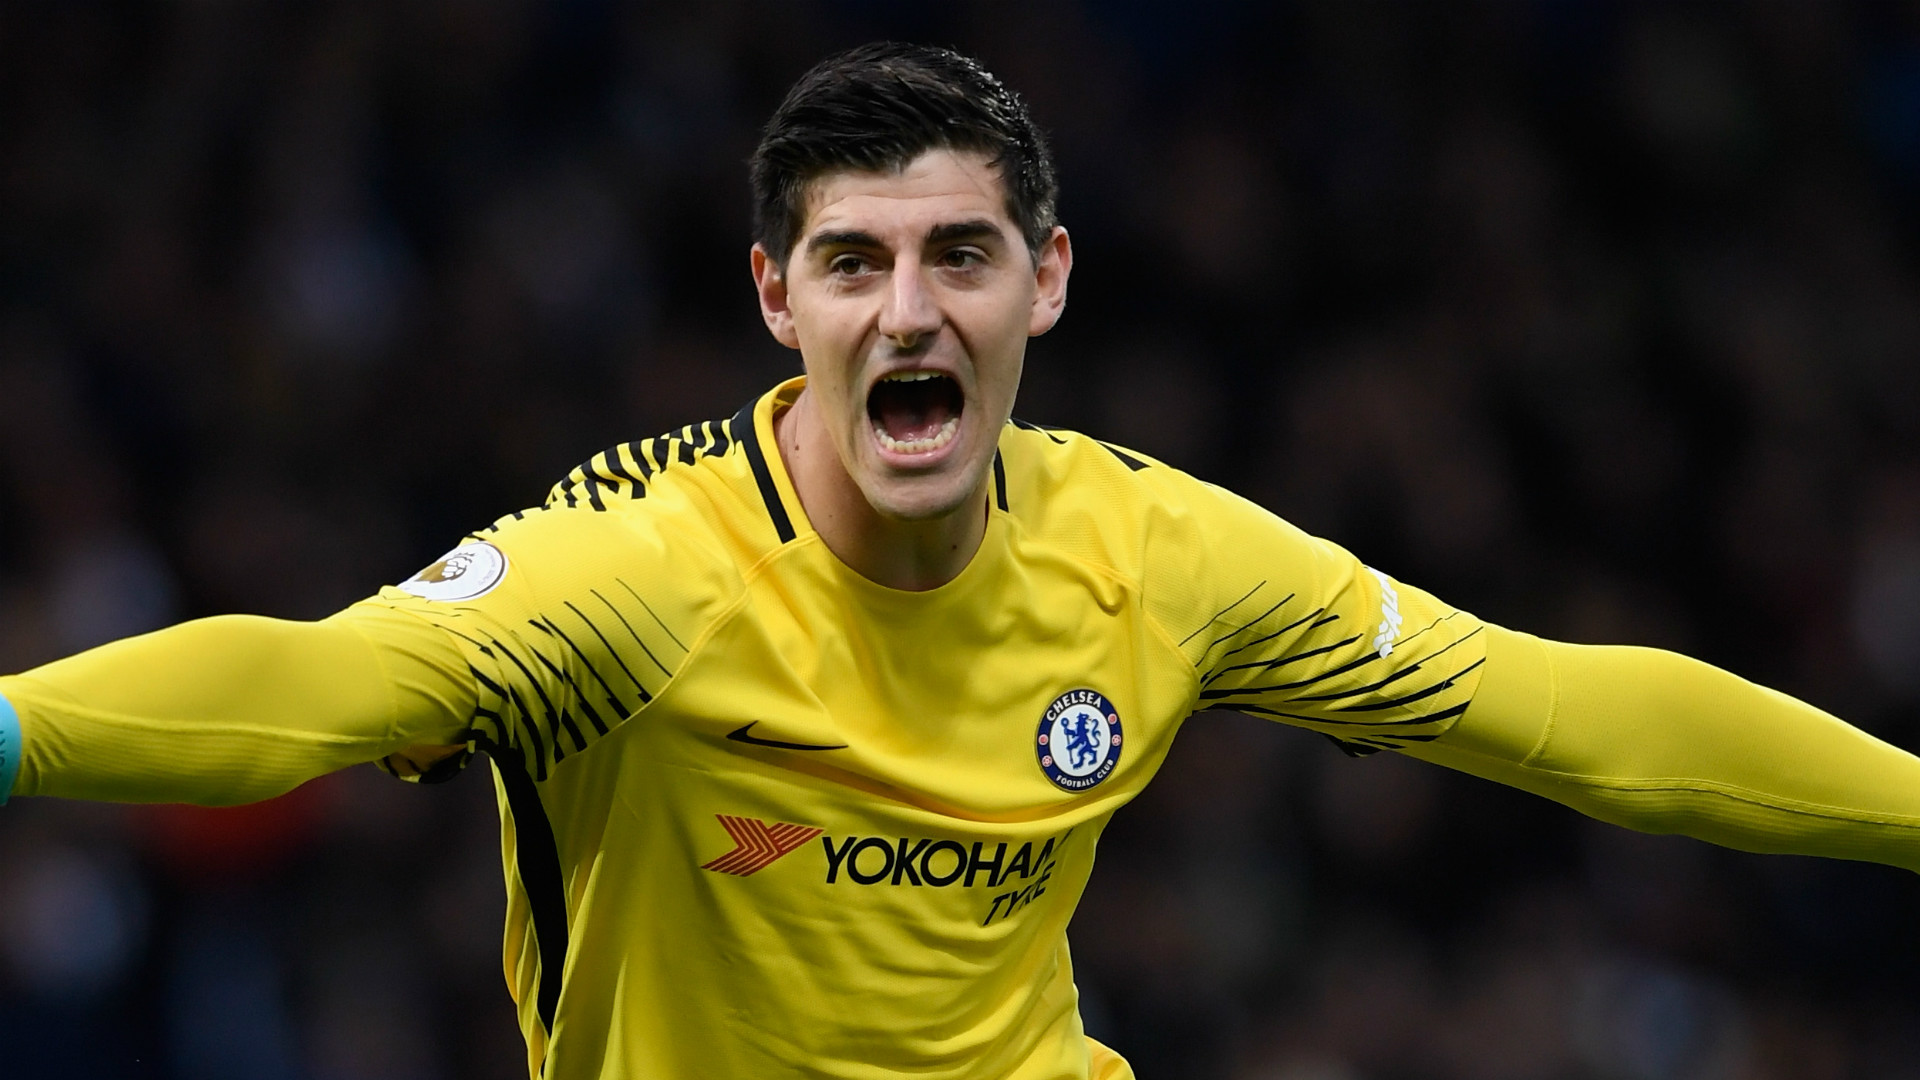 Thibaut Courtois wants Real Madrid move to be close to children